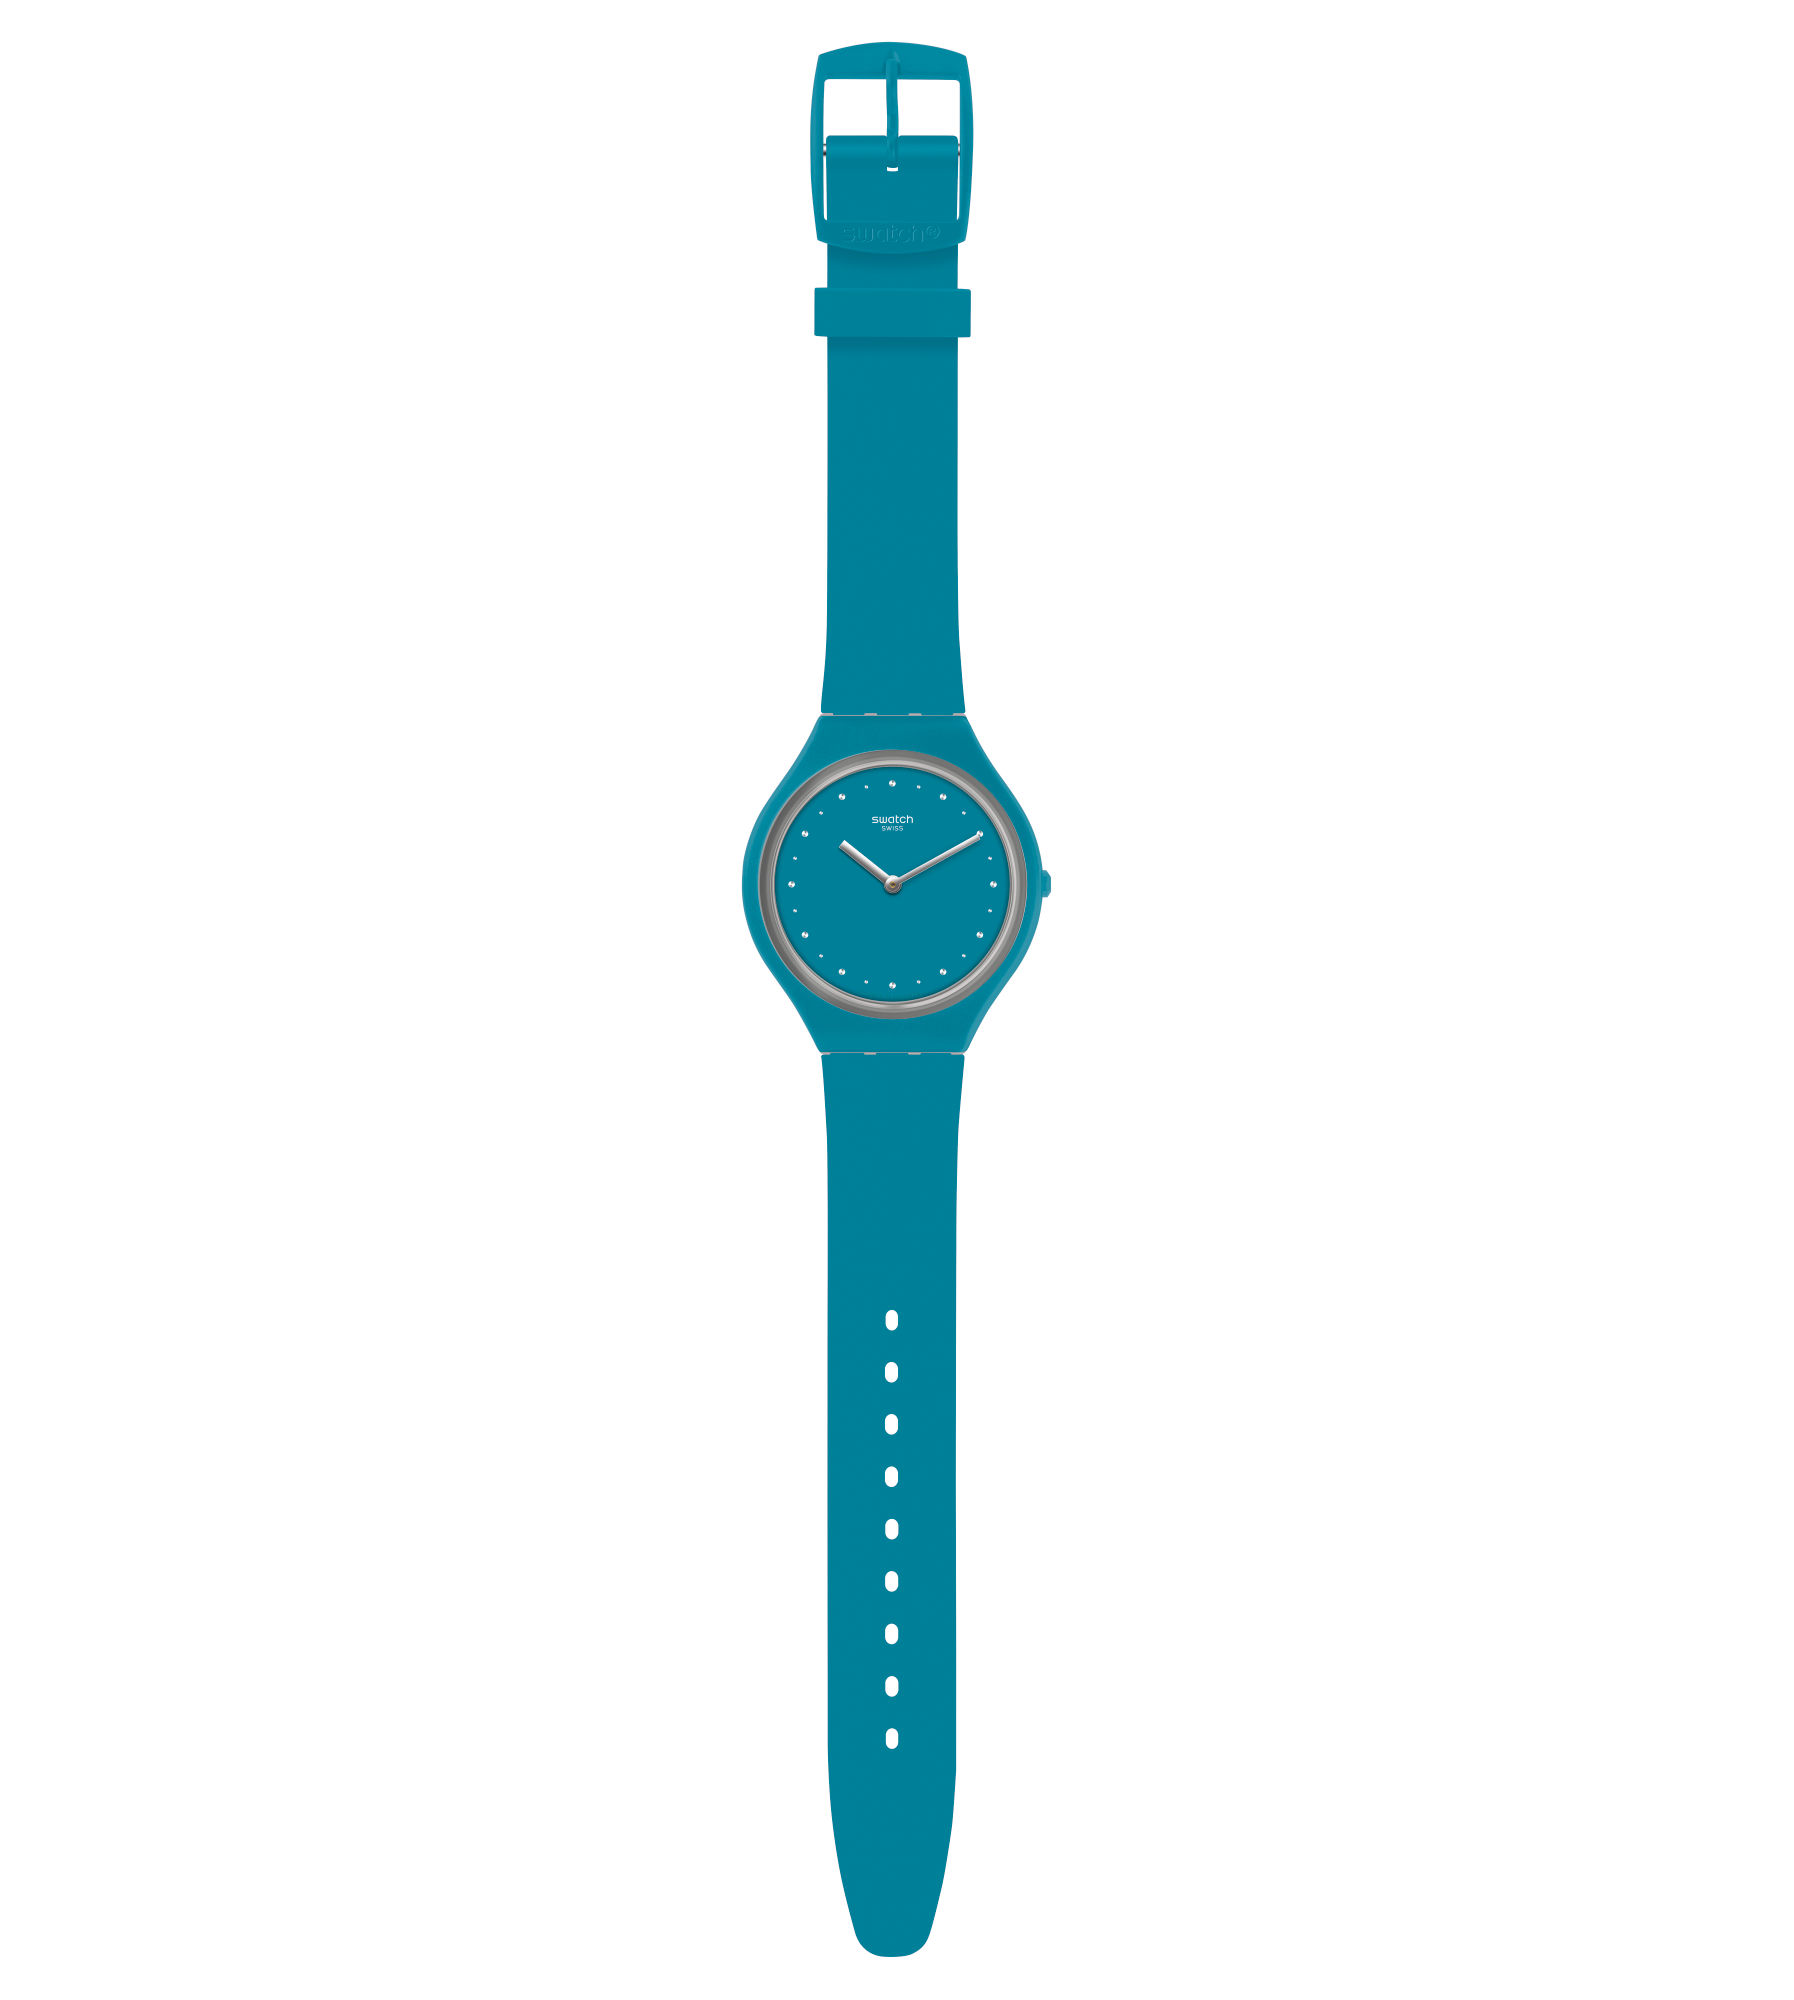 SWATCH WATCH UNISEX SKINAUTIQUE REF. SVOL100